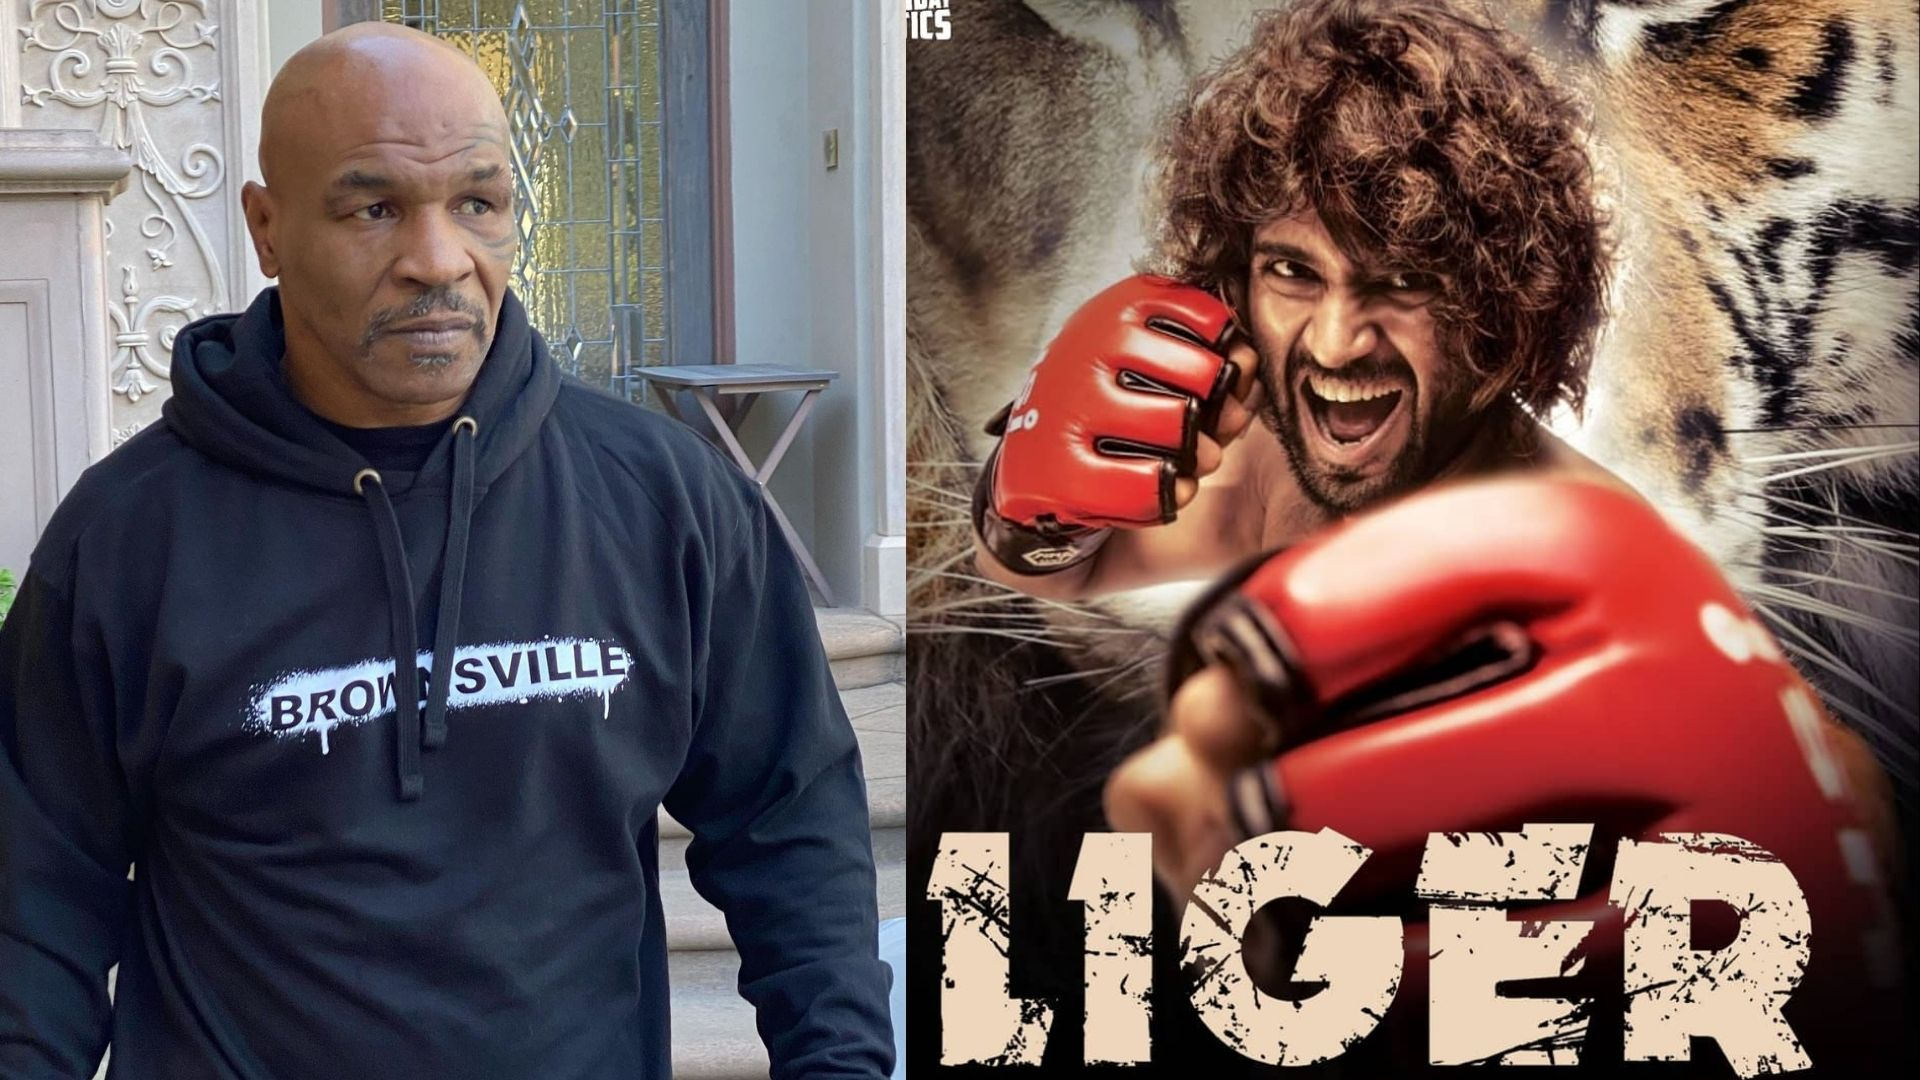 Liger: Makers Rope In Master Of The Rings Mike Tyson For Vijay Devrakonda Starrer; Announcement Video Is Sure To Give You Goosebumps